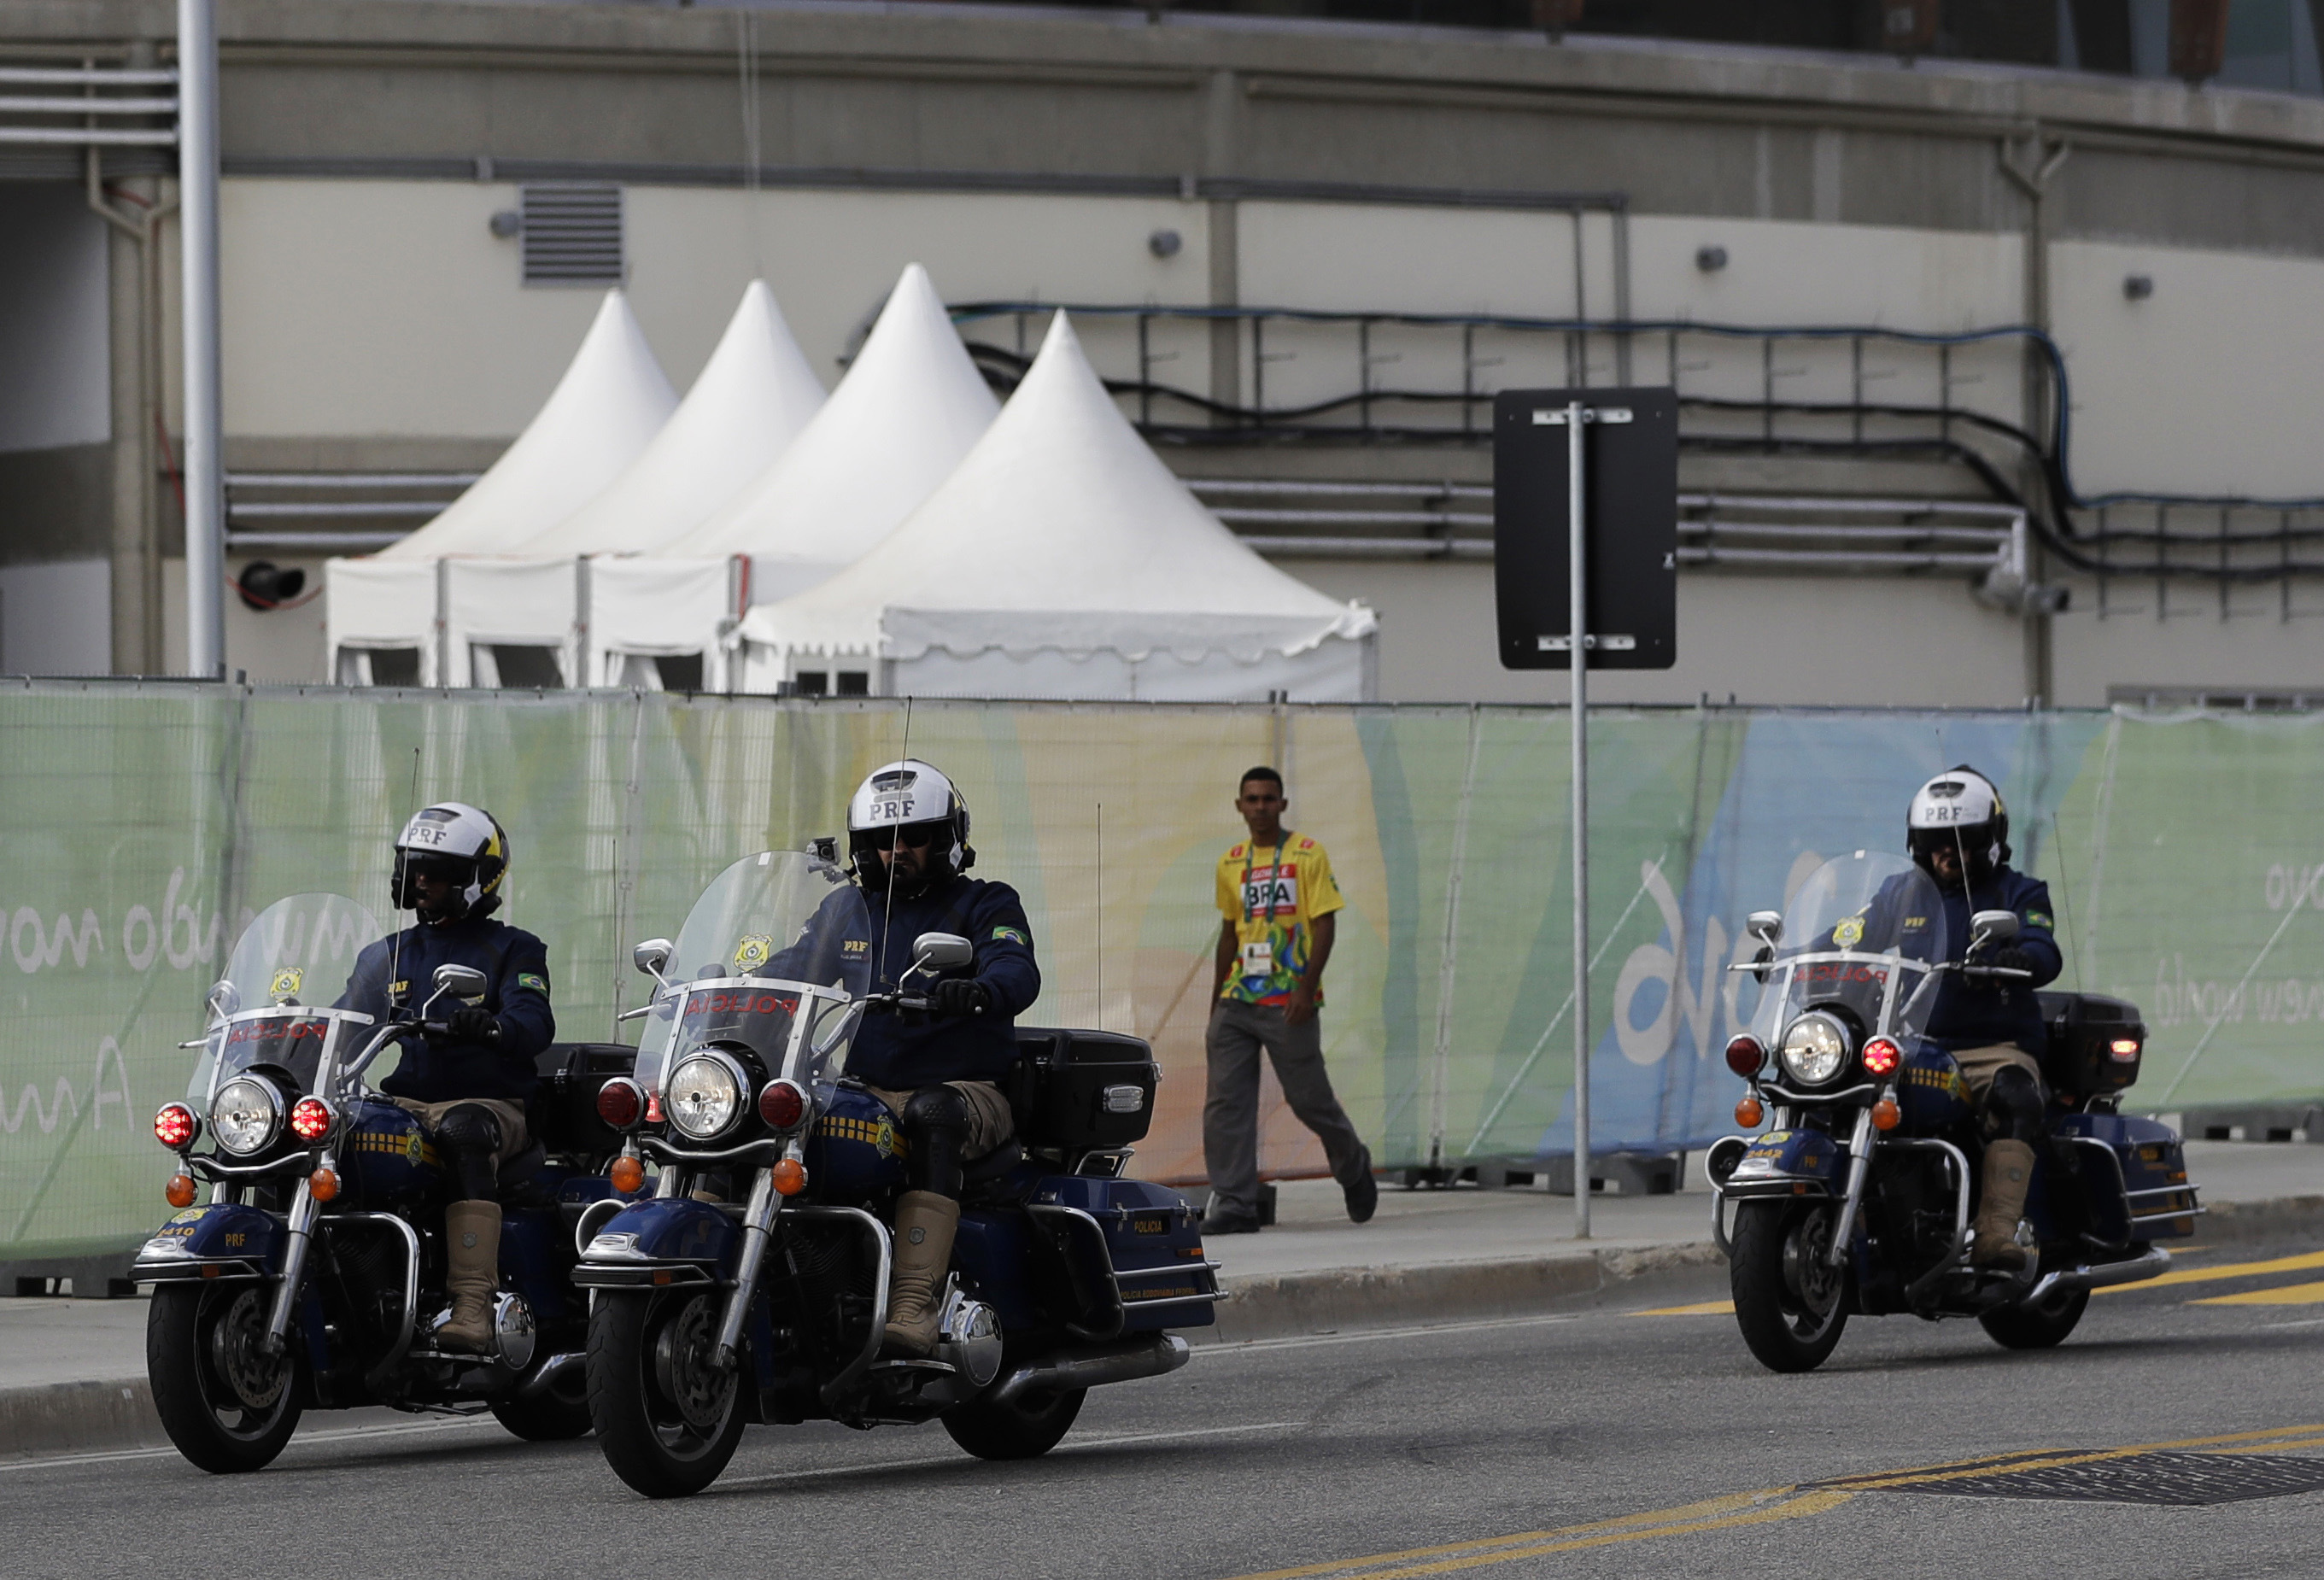 Motorcycle police ride along a road inside the Olympic Park, ahead of the 2016 Summer Olympics in Rio de Janeiro, Brazil, Tuesday, Aug. 2, 2016. (AP Photo/Rebecca Blackwell)